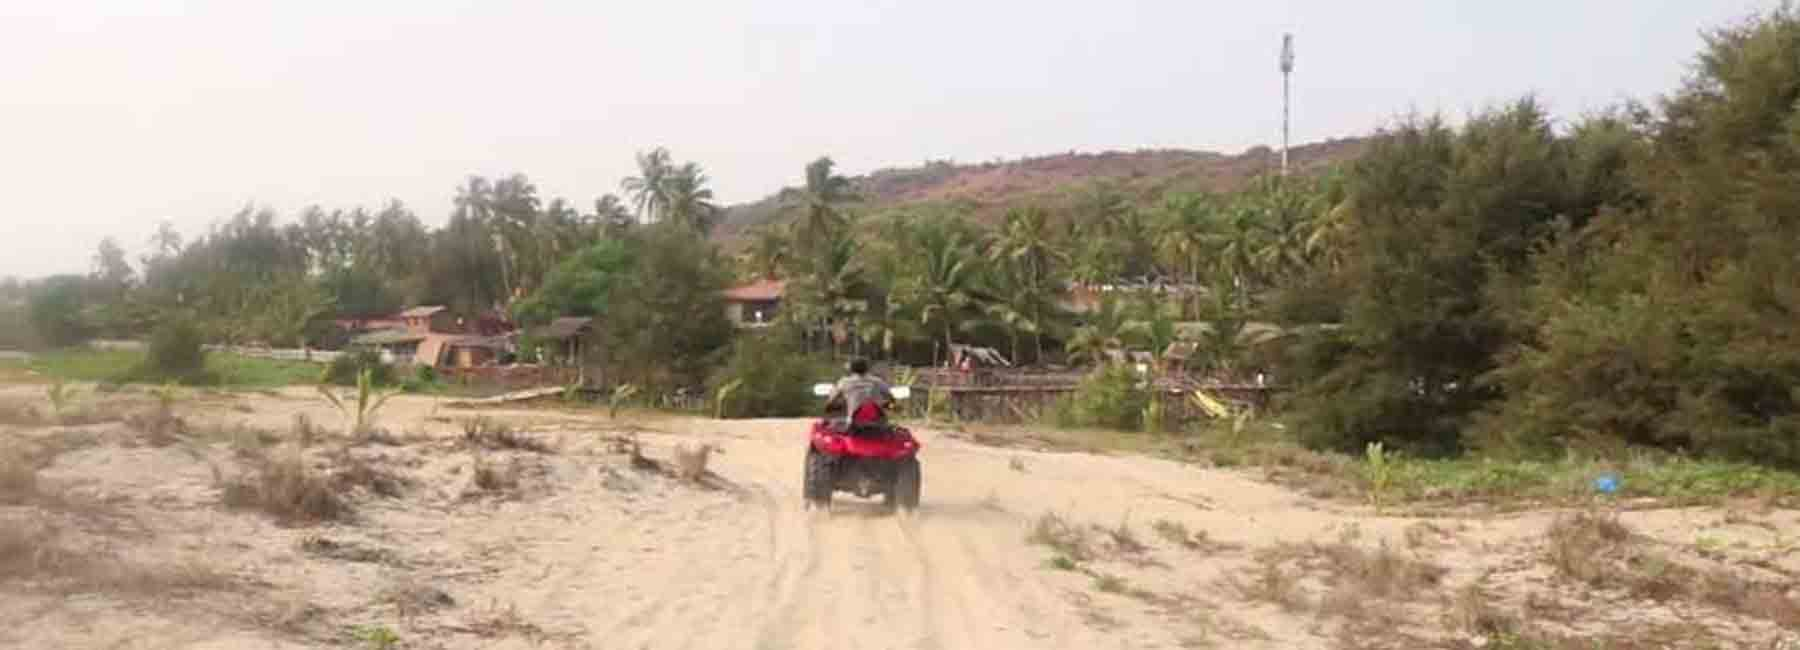 atv-ride-goa -